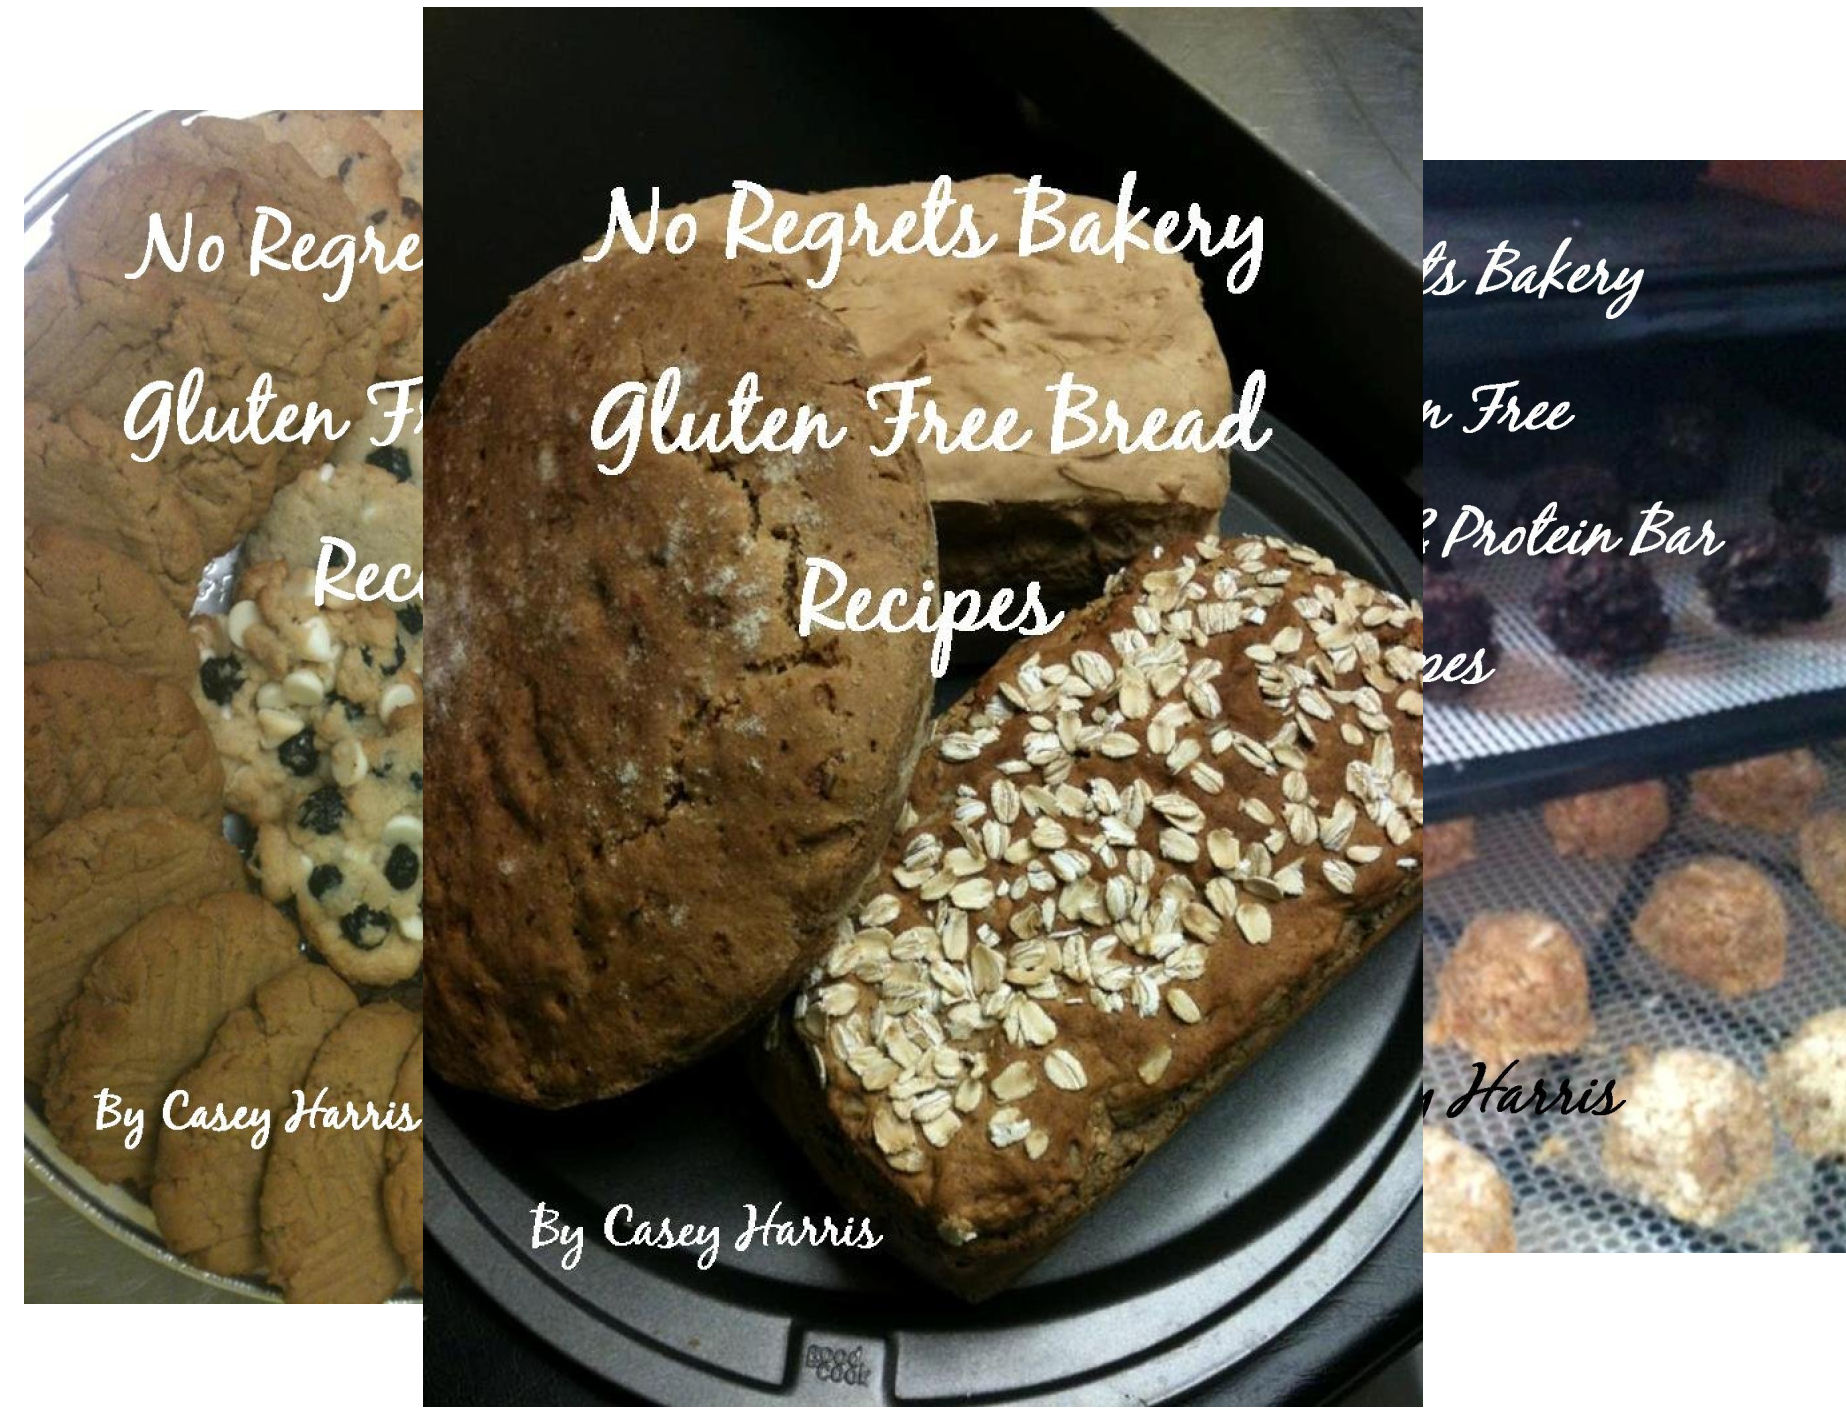 No Regrets Bakery Gluten Free Recipes (4 Book Series)